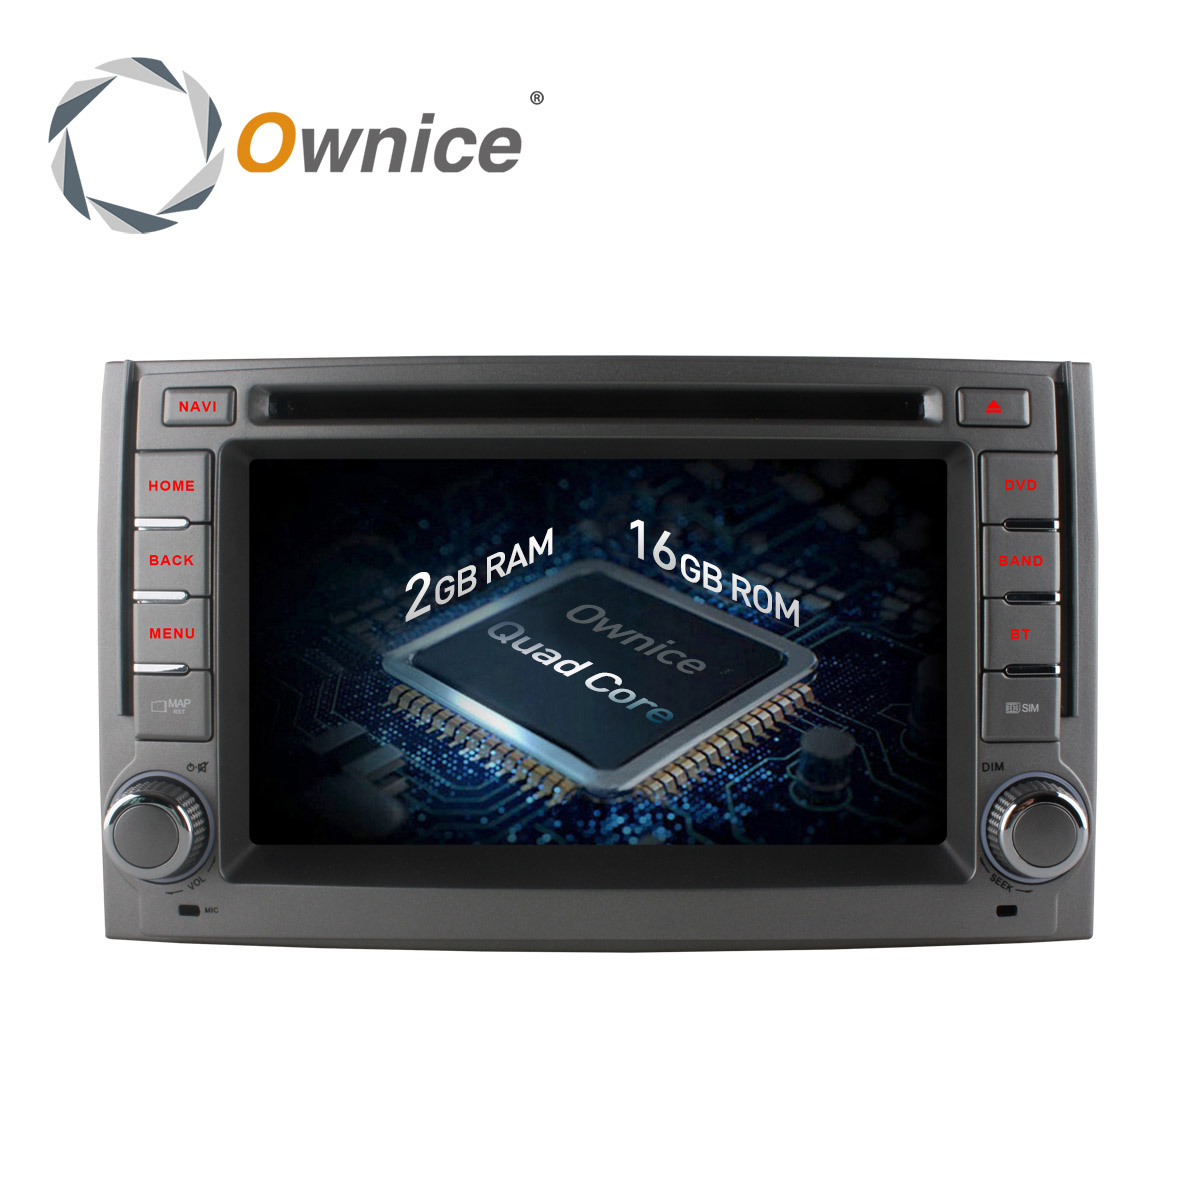 Ownice C500 Android 6.0 Octa Core Car DVD GPS Navi for Hyundai H1 Grand Starex 2007 - 2015 2GB RAM 32GB ROM support 4G DAB+ TPMS